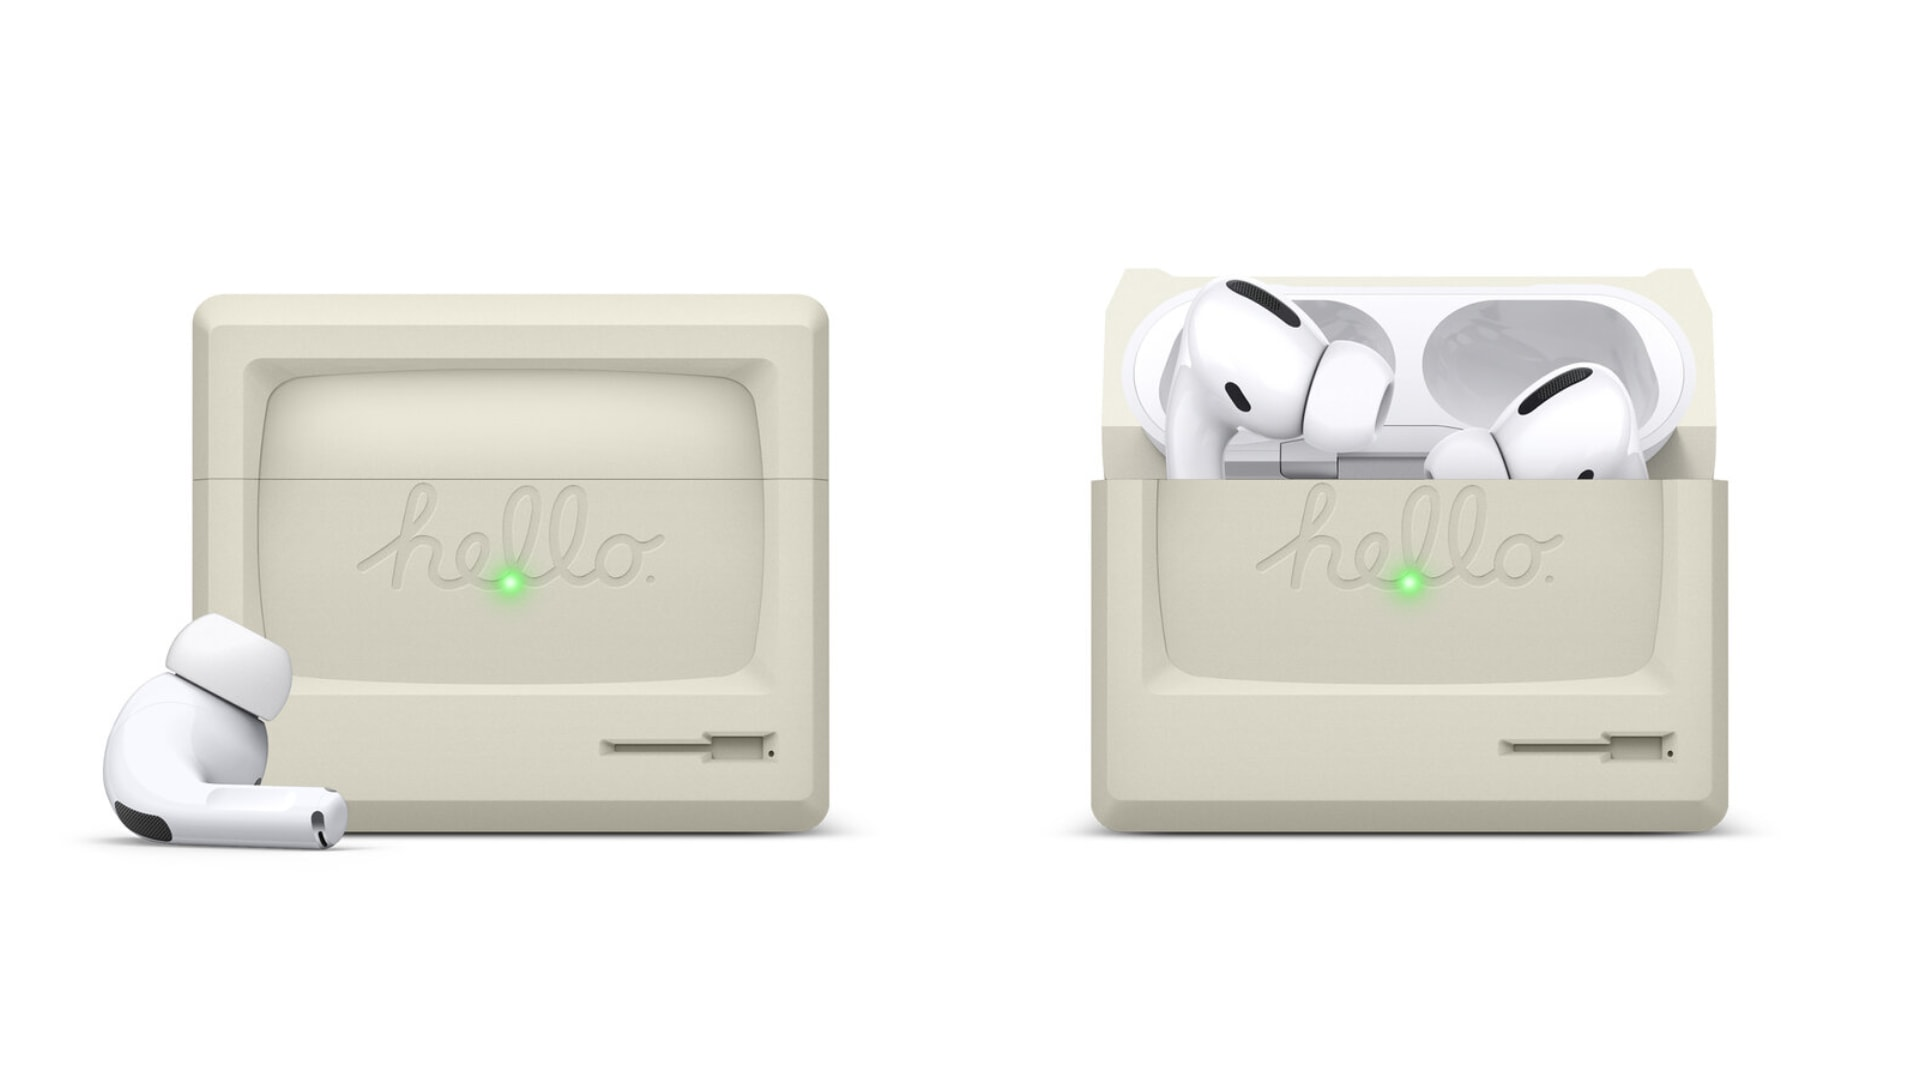 Awesome Airpods Case Inspired By A Classic Mac Goes Pro